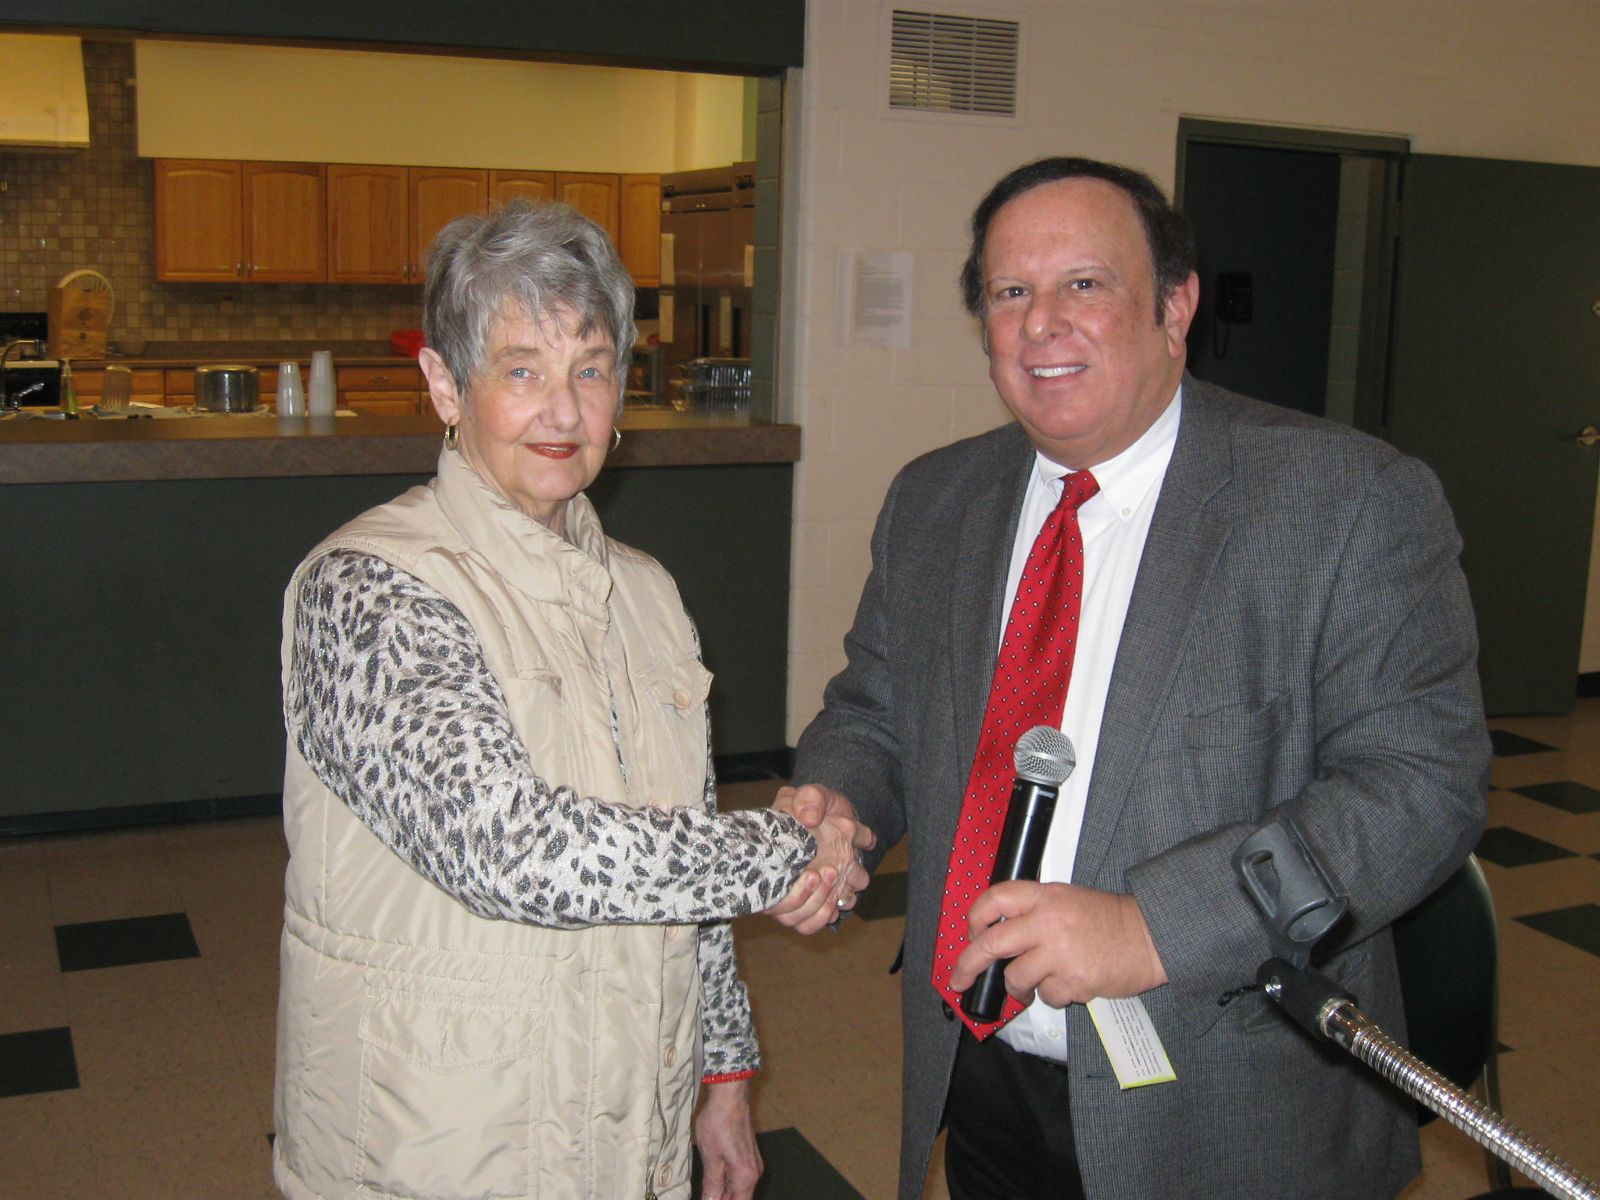 Image of Trustee Tony Rosiello swearing in Lynn Case to her second term as President of the Green Township Senior Center